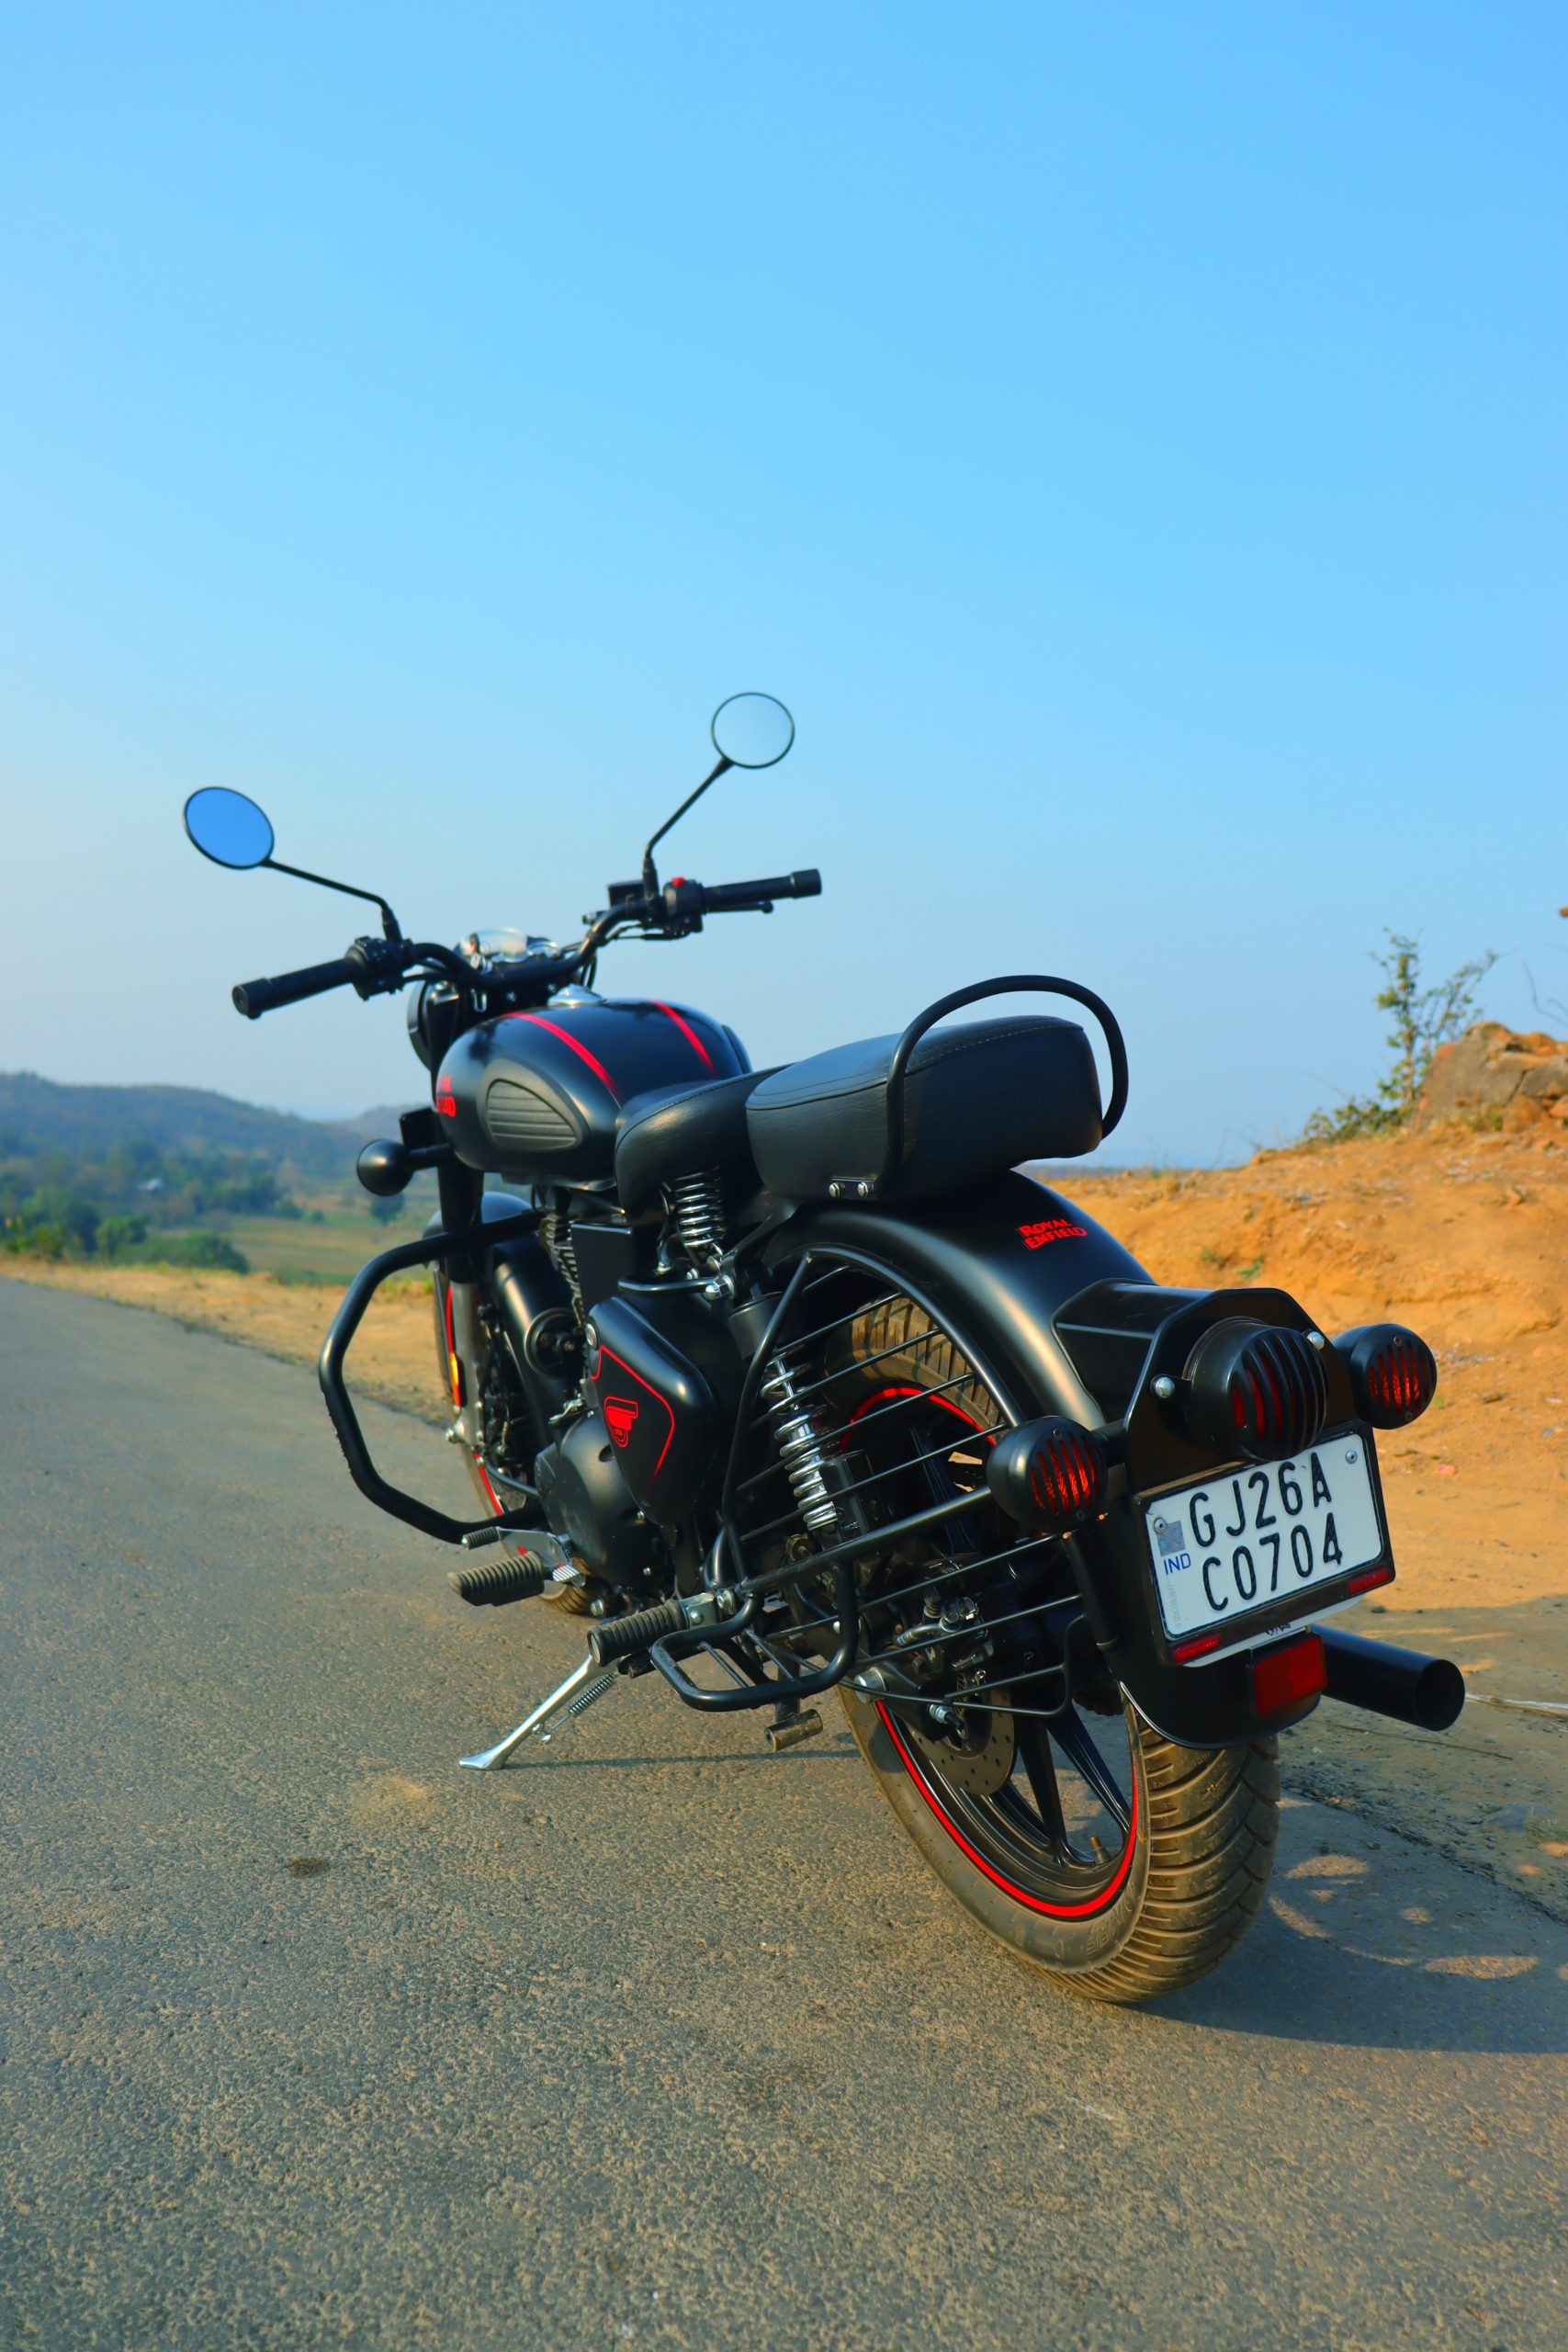 Royal Enfield standing on the road